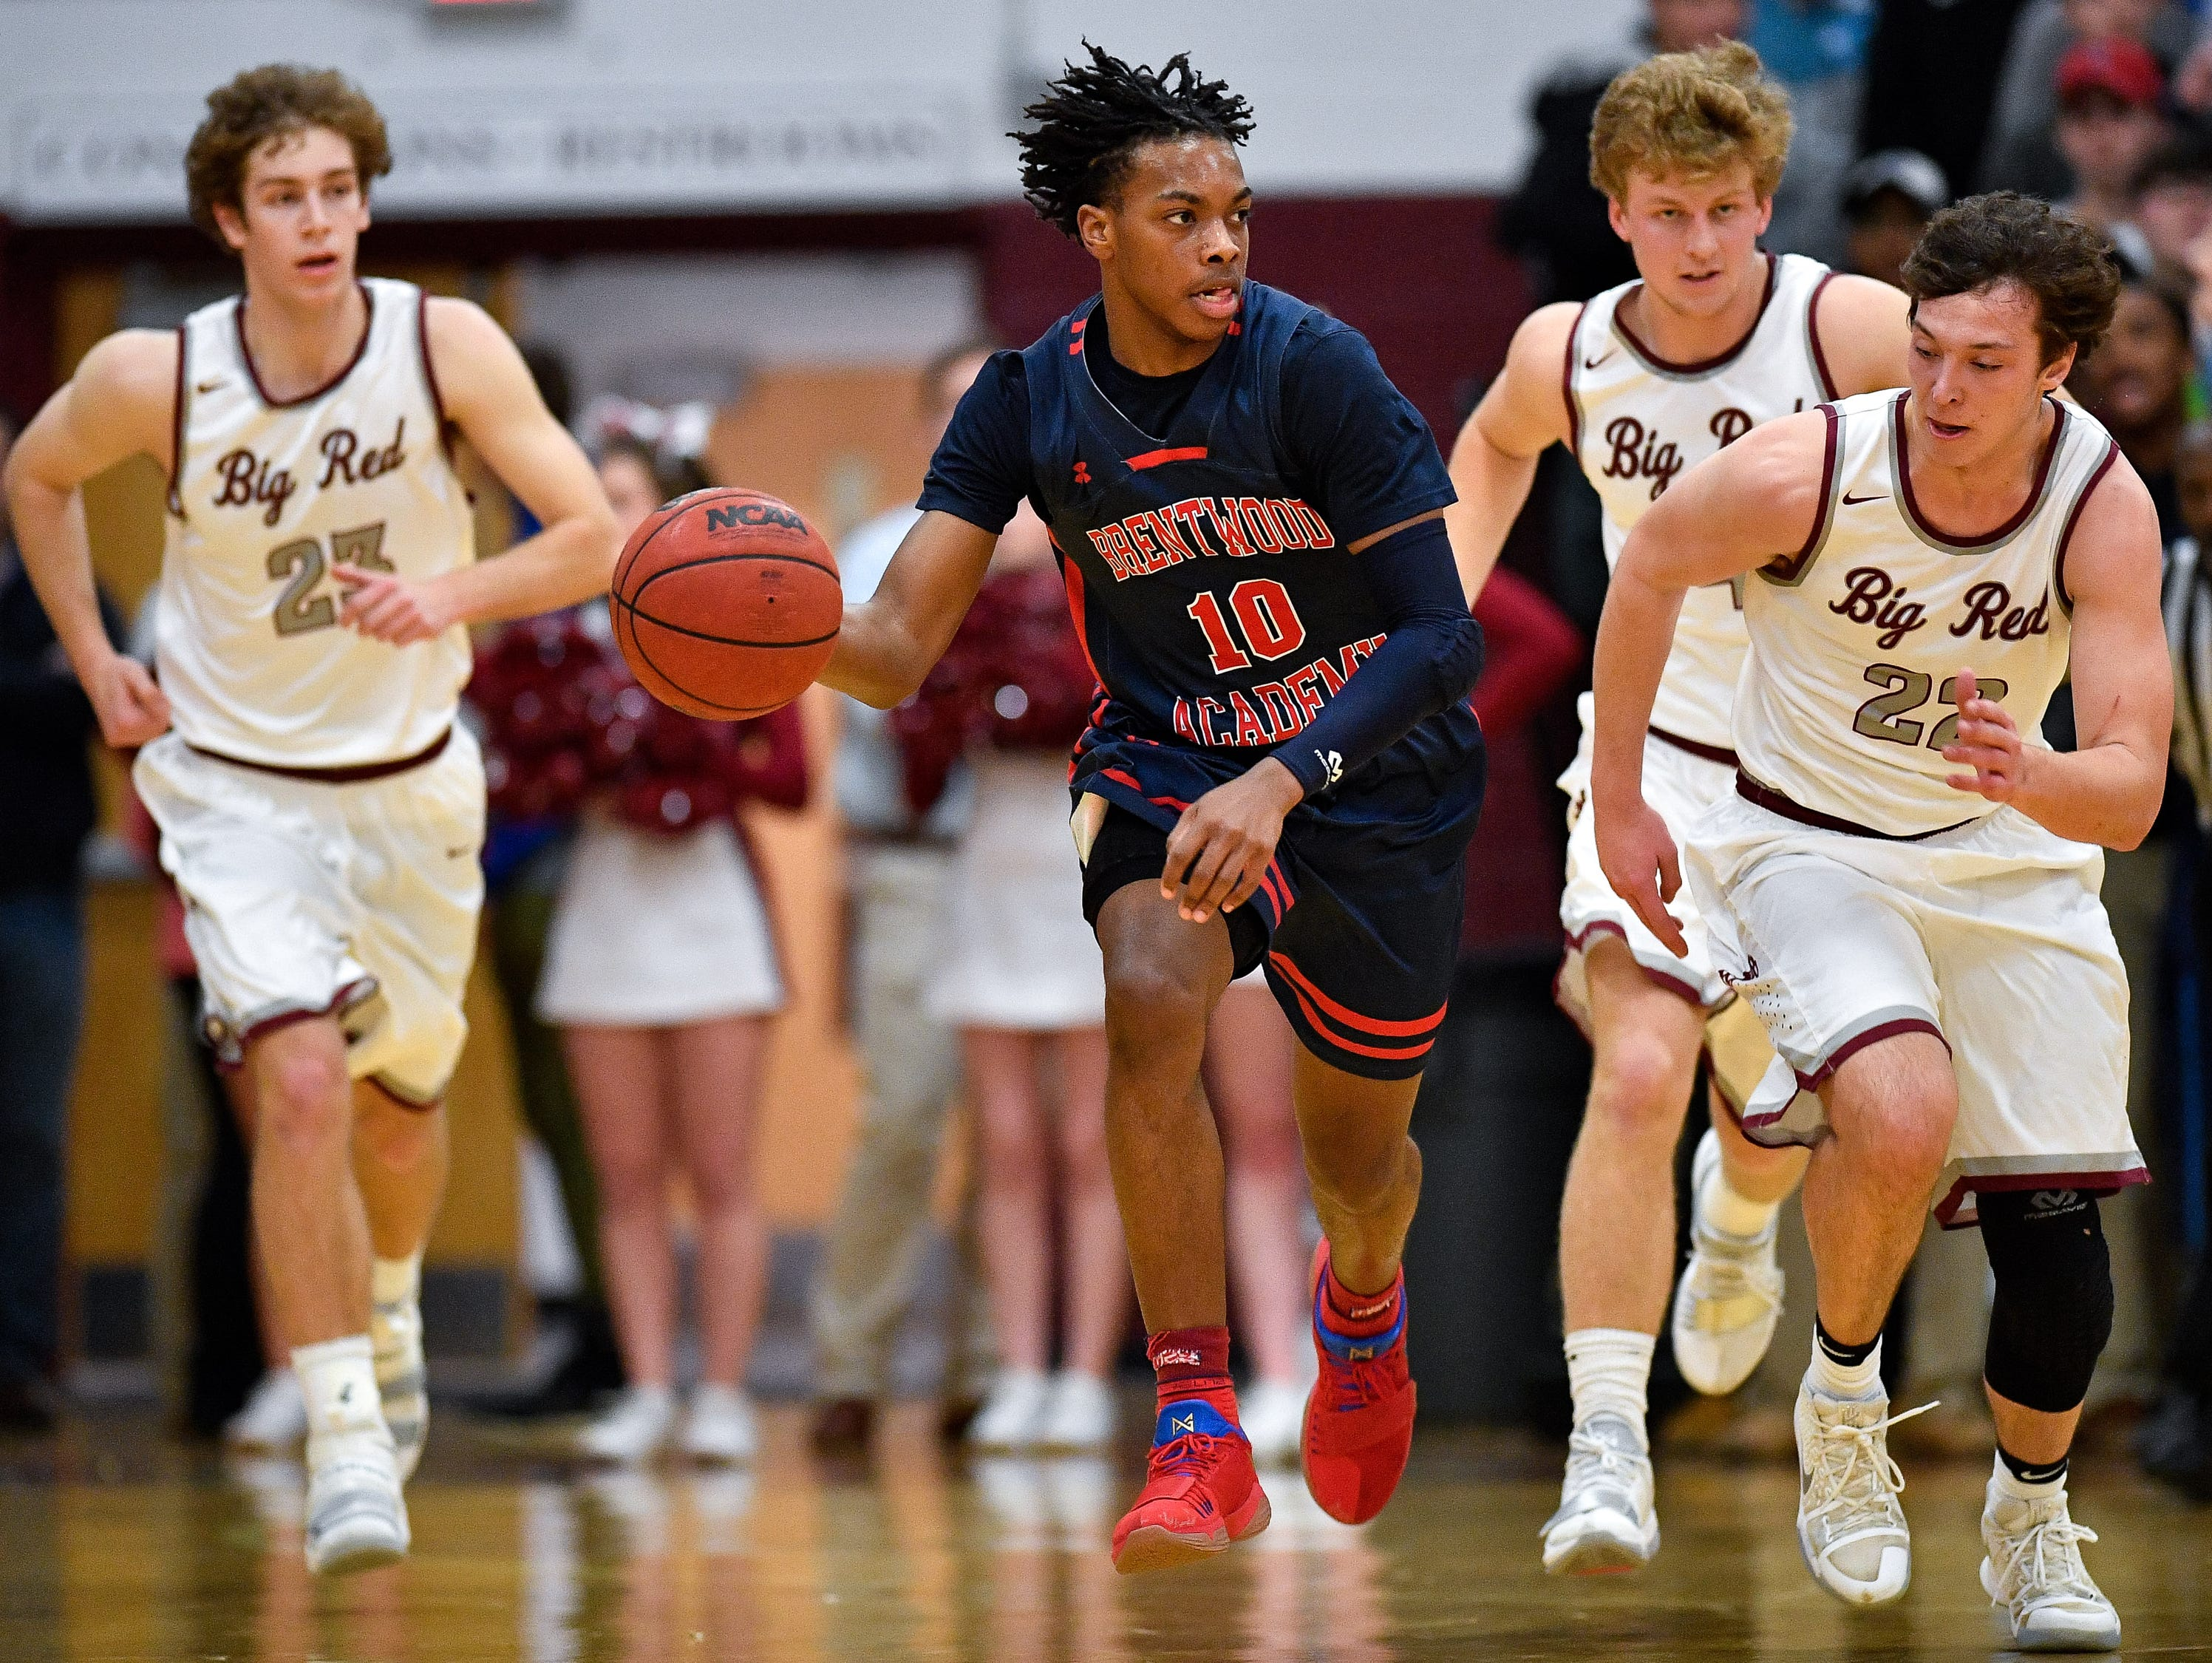 Brentwood Academy's Darius Garland (10) advances against MBA during the first half at Montgomery Bell Academy in Nashville, Tenn., Thursday, Jan. 25, 2018.